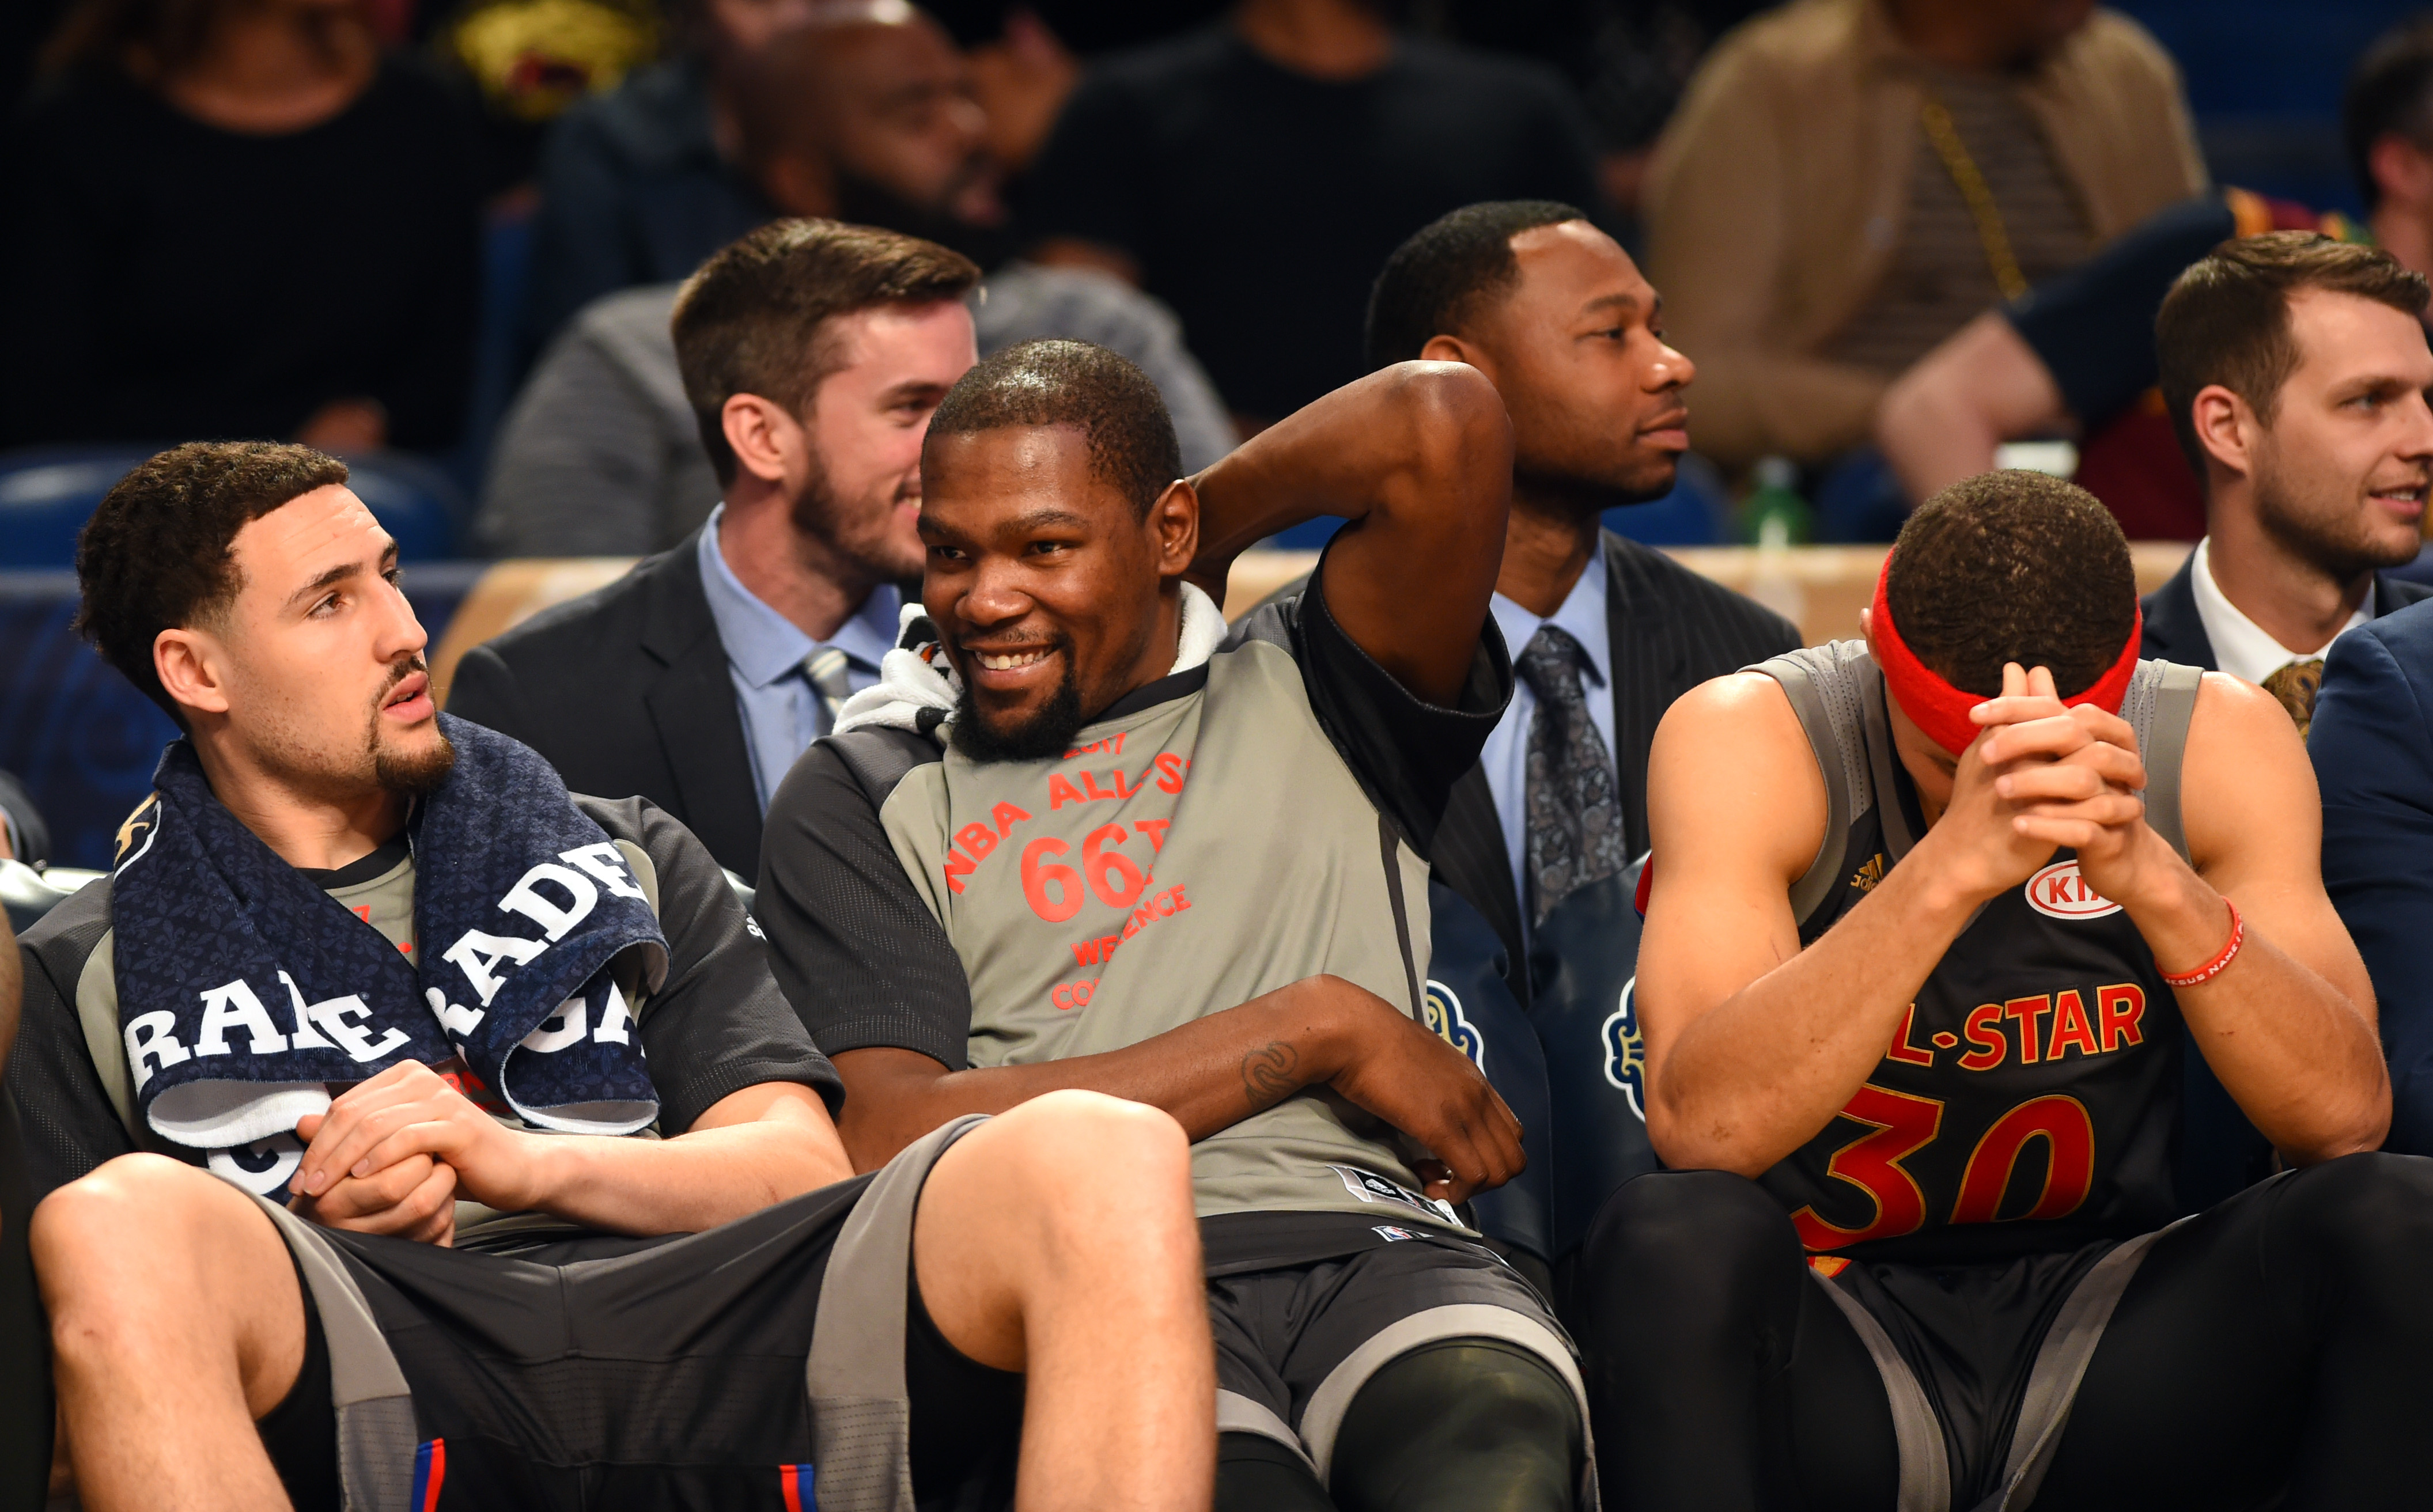 Feb 19, 2017; New Orleans, LA, USA; Western Conference guard Klay Thompson of the Golden State Warriors (11), Western Conference forward Kevin Durant of the Golden State Warriors (35) and Western Conference guard Stephen Curry of the Golden State Warriors (30) sit on the bench in the 2017 NBA All-Star Game at Smoothie King Center. Mandatory Credit: Bob Donnan-USA TODAY Sports